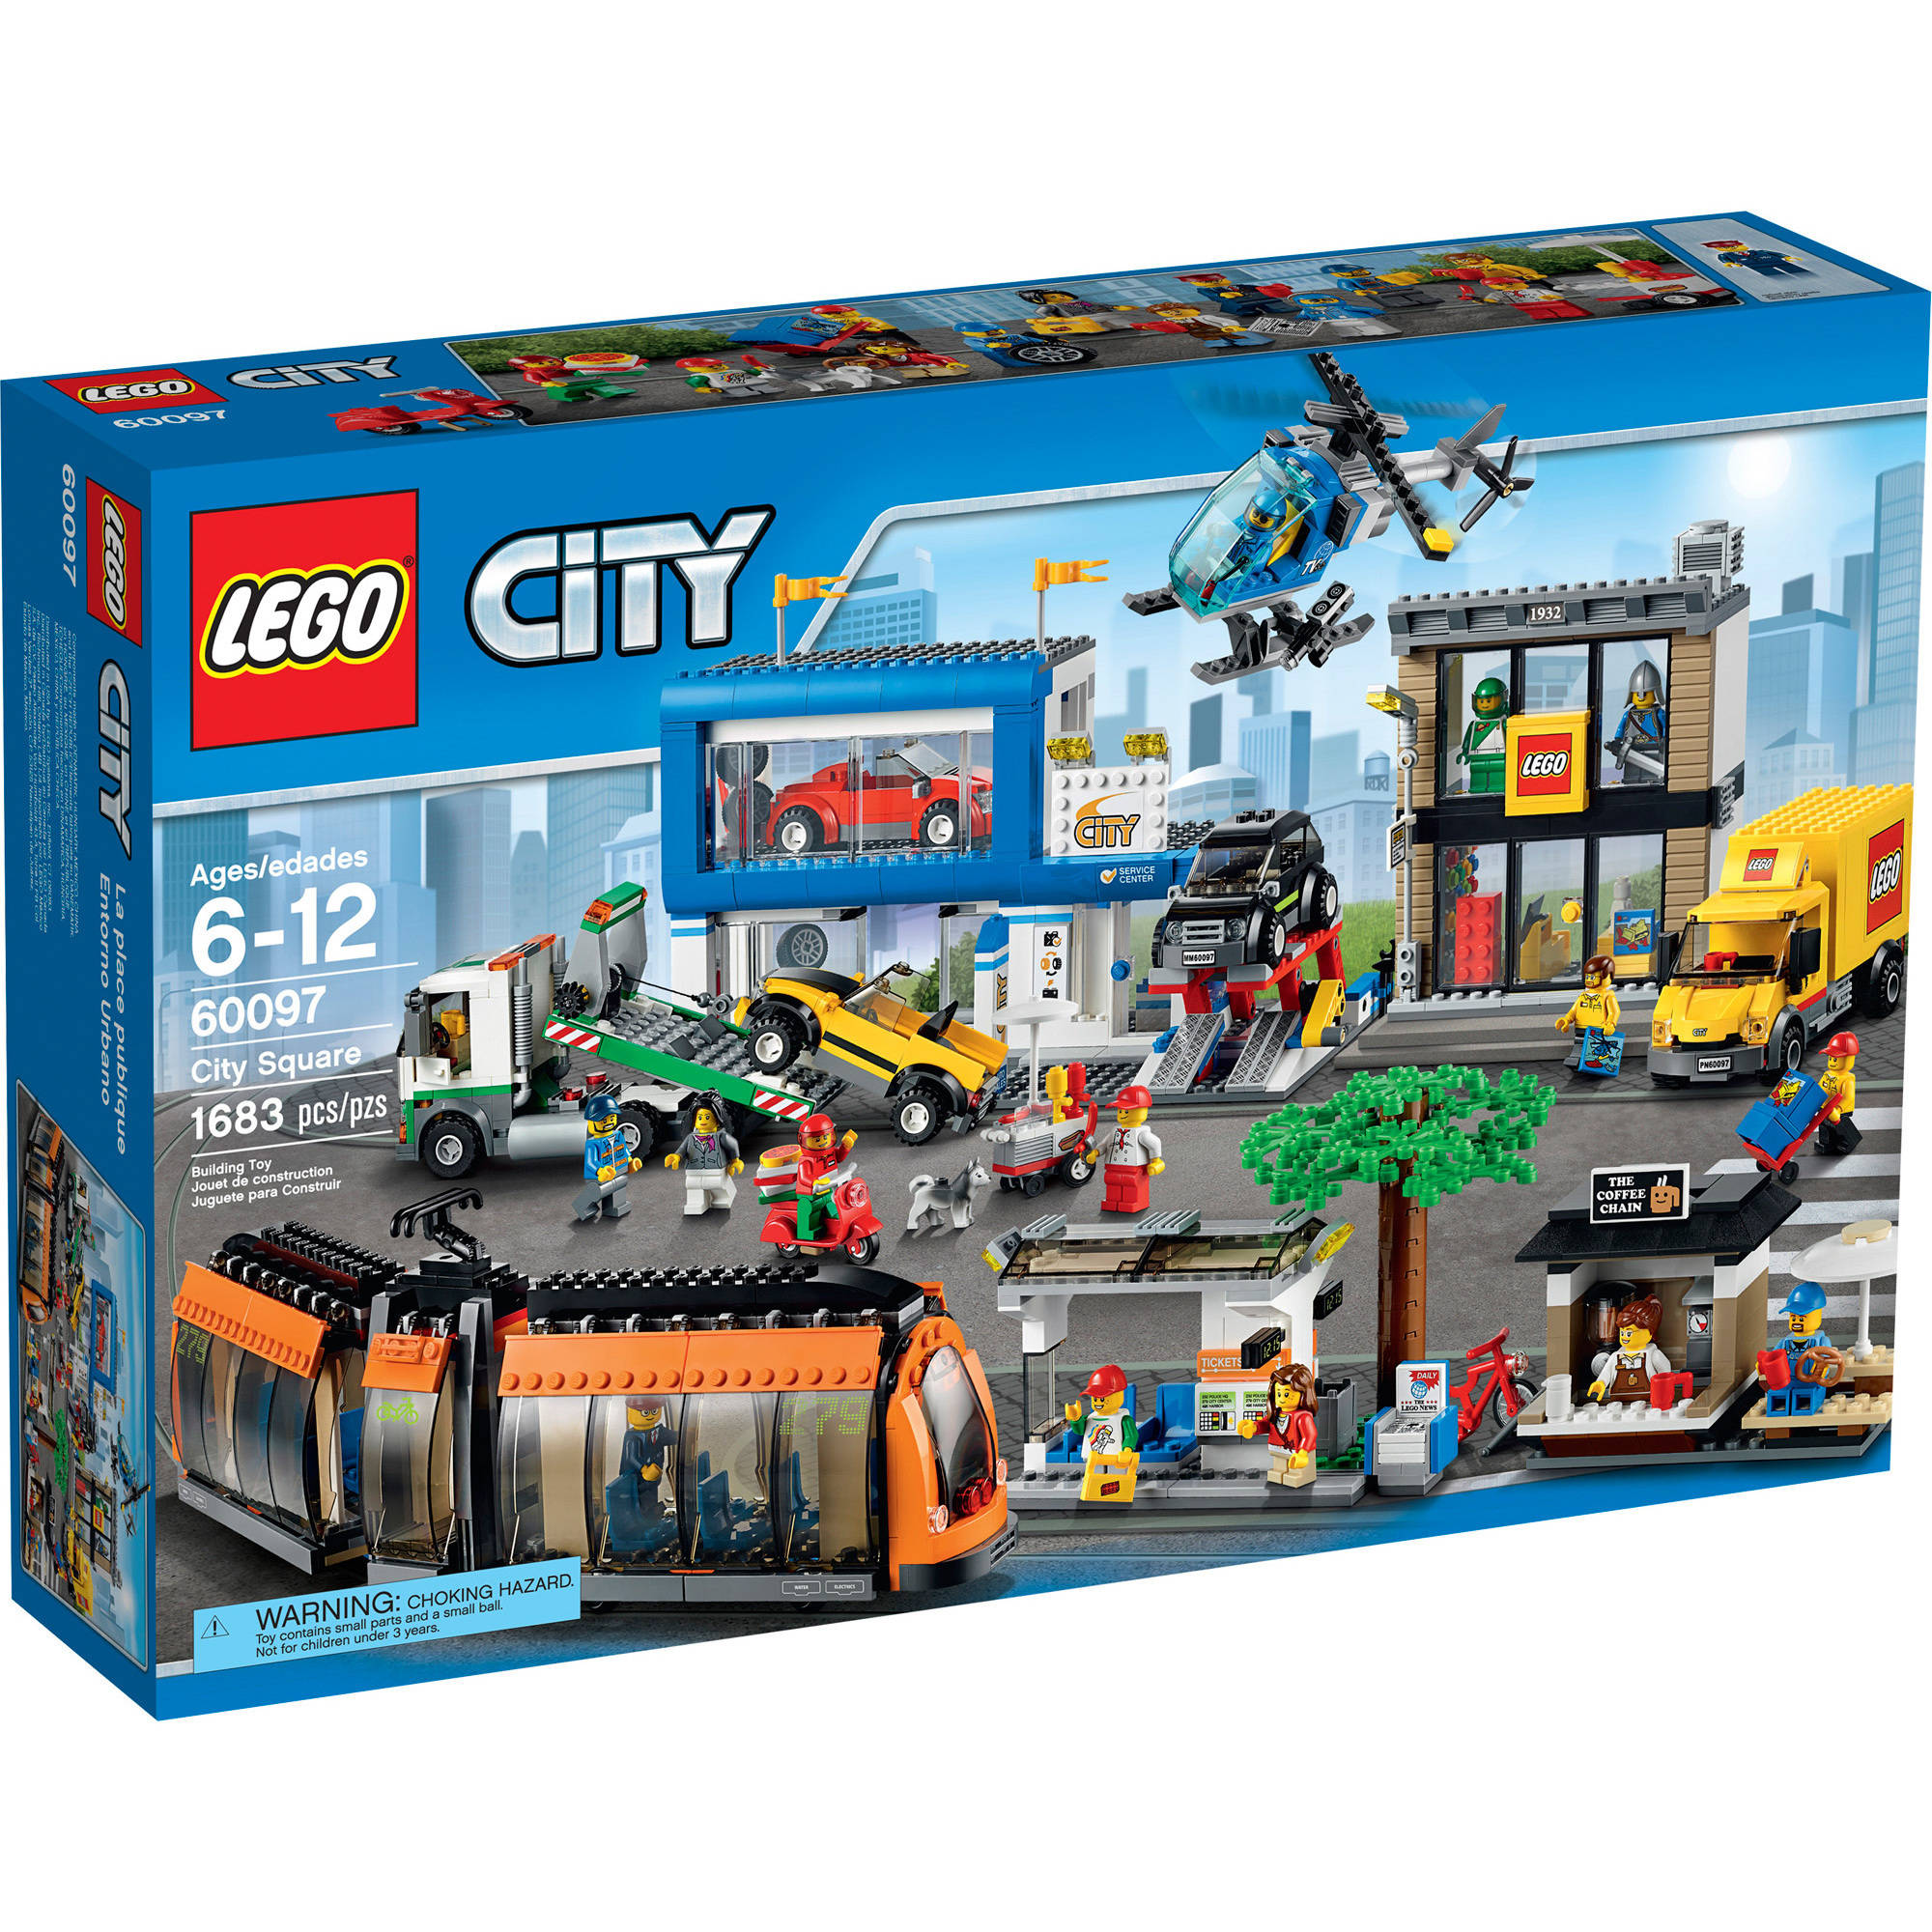 LEGO City Town City Square, 60097